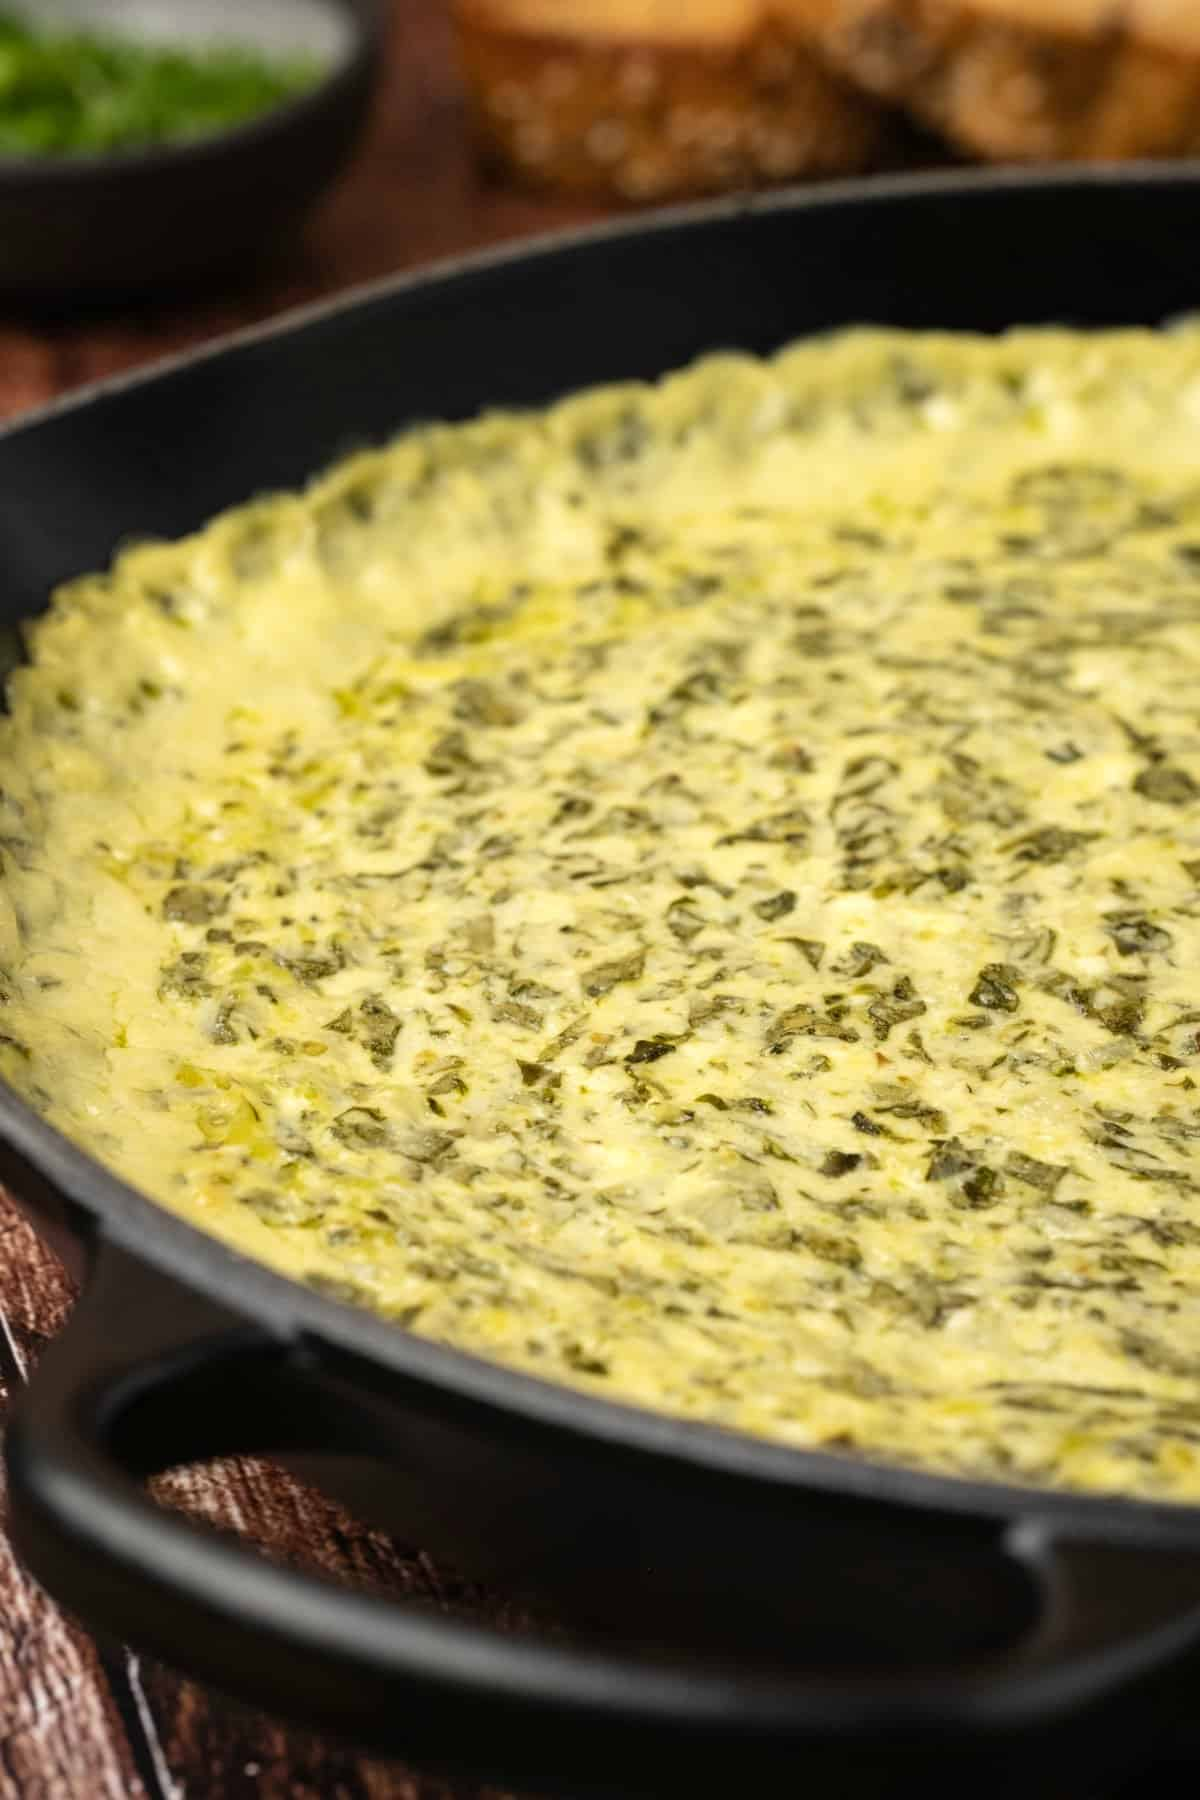 Freshly baked spinach dip in a cast iron skillet.